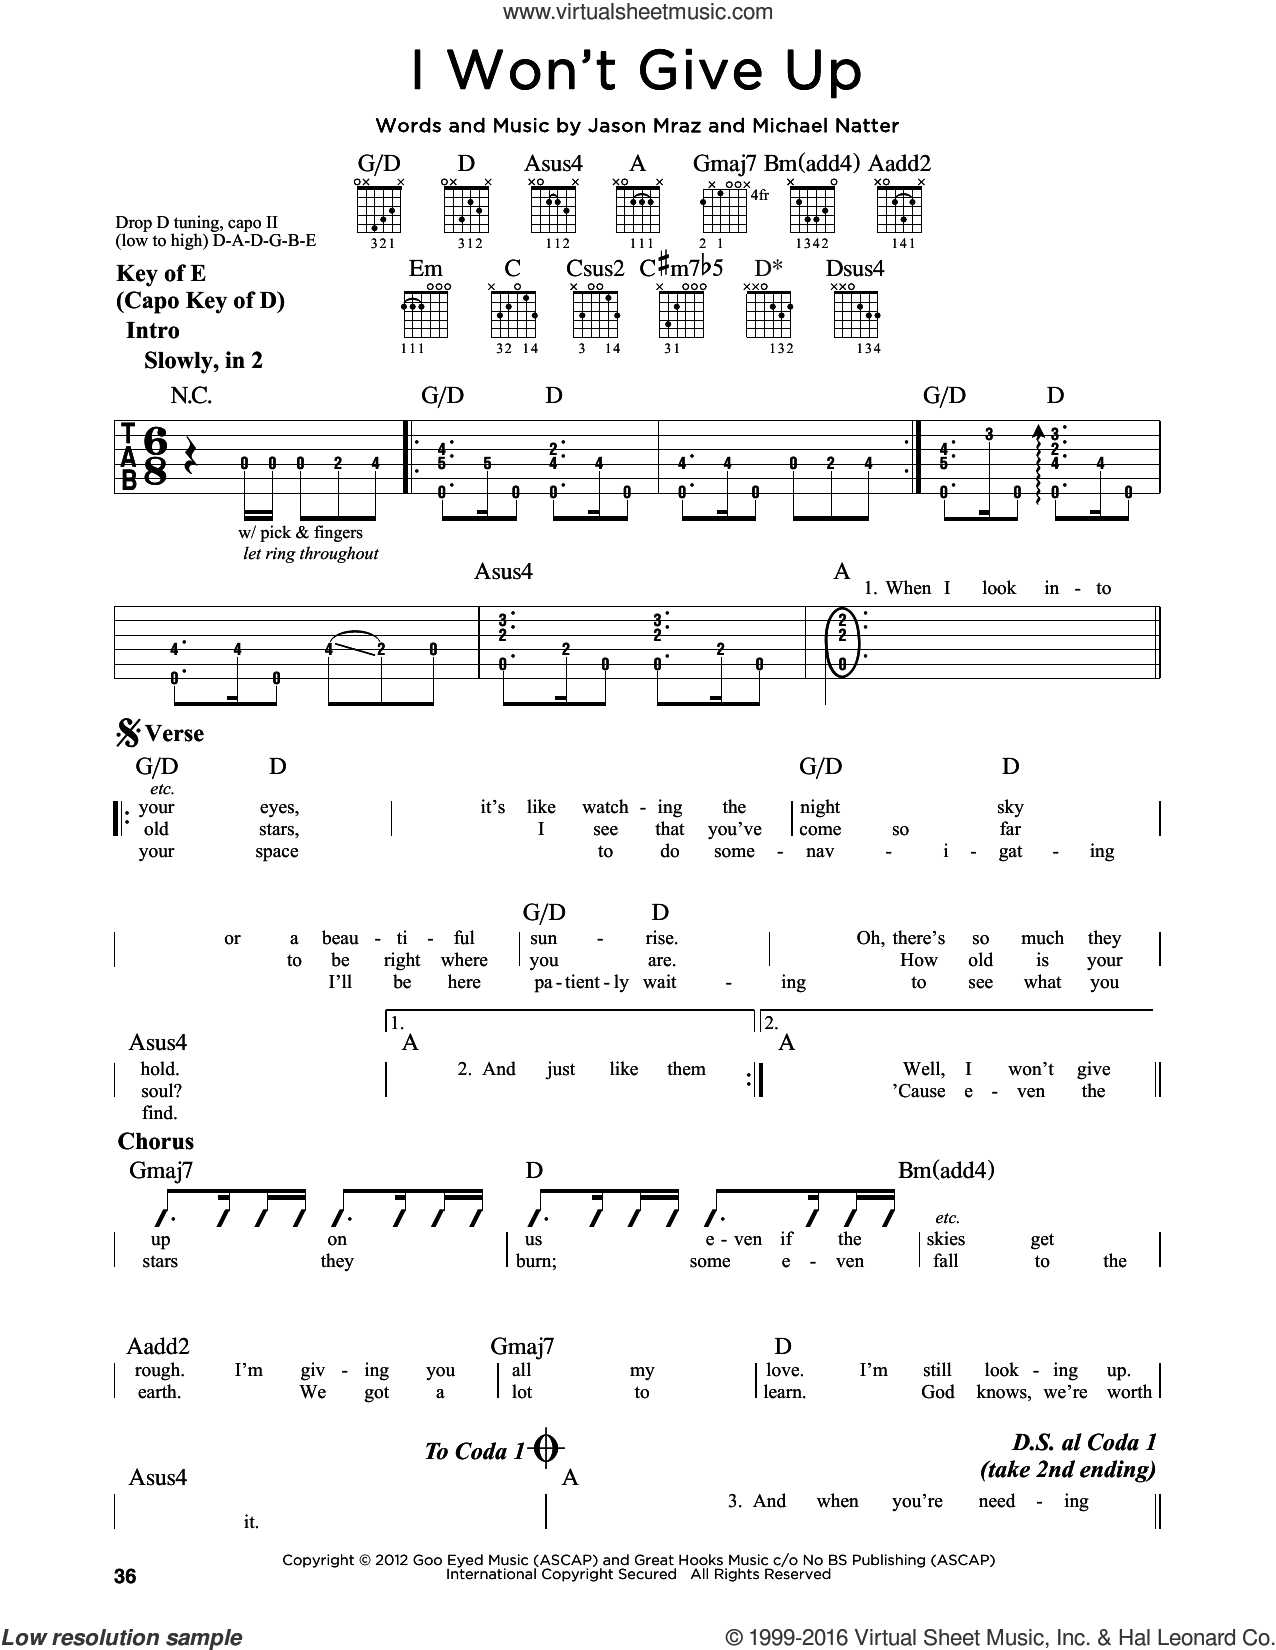 I Won't Give Up sheet music for guitar solo (lead sheet) by Michael Natter